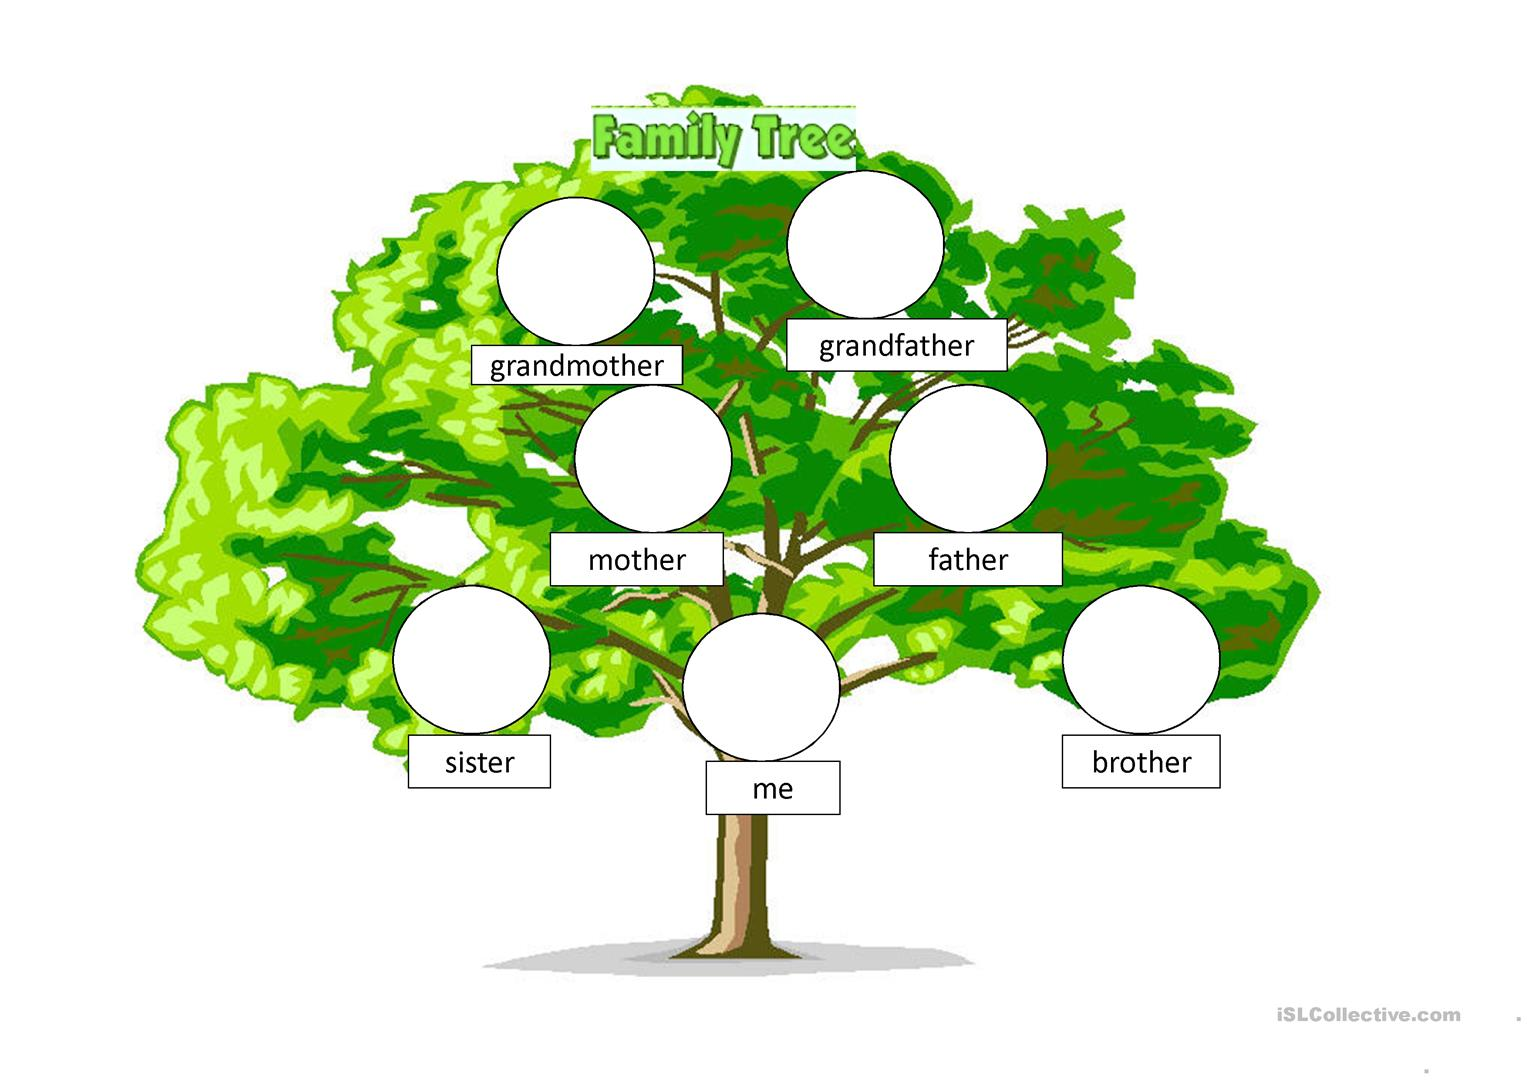 beginners-family-tree-classroom-posters-fun-activities-games-picture-dic_21061_1.jpg